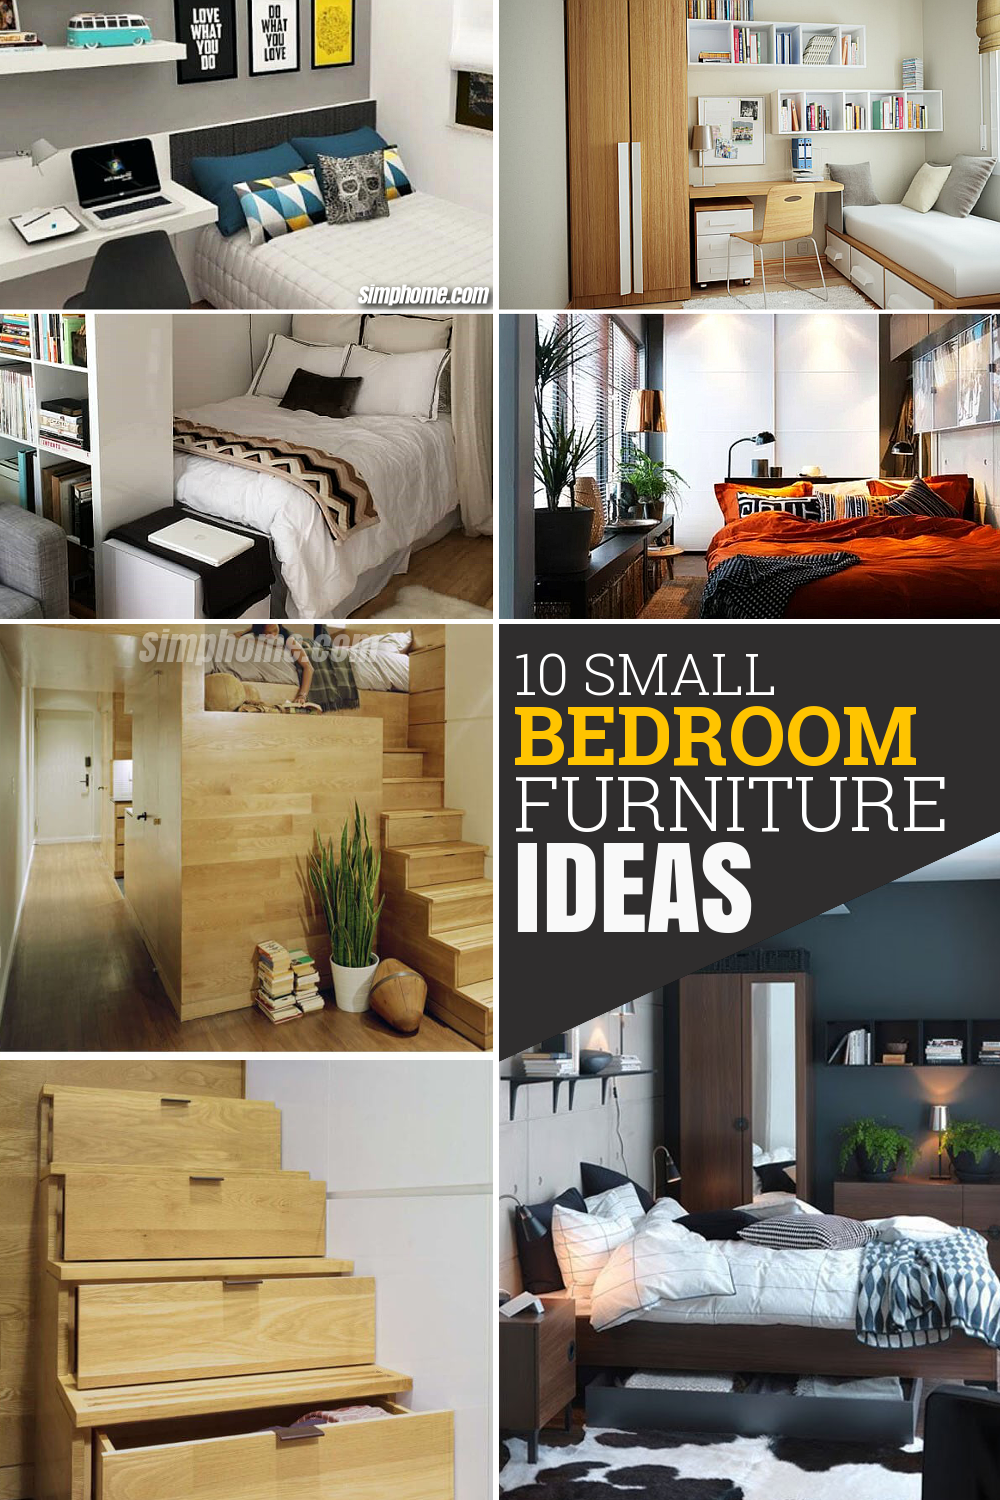 10 Small Bedroom Furniture Ideas via Simphome com Pinterest Featured